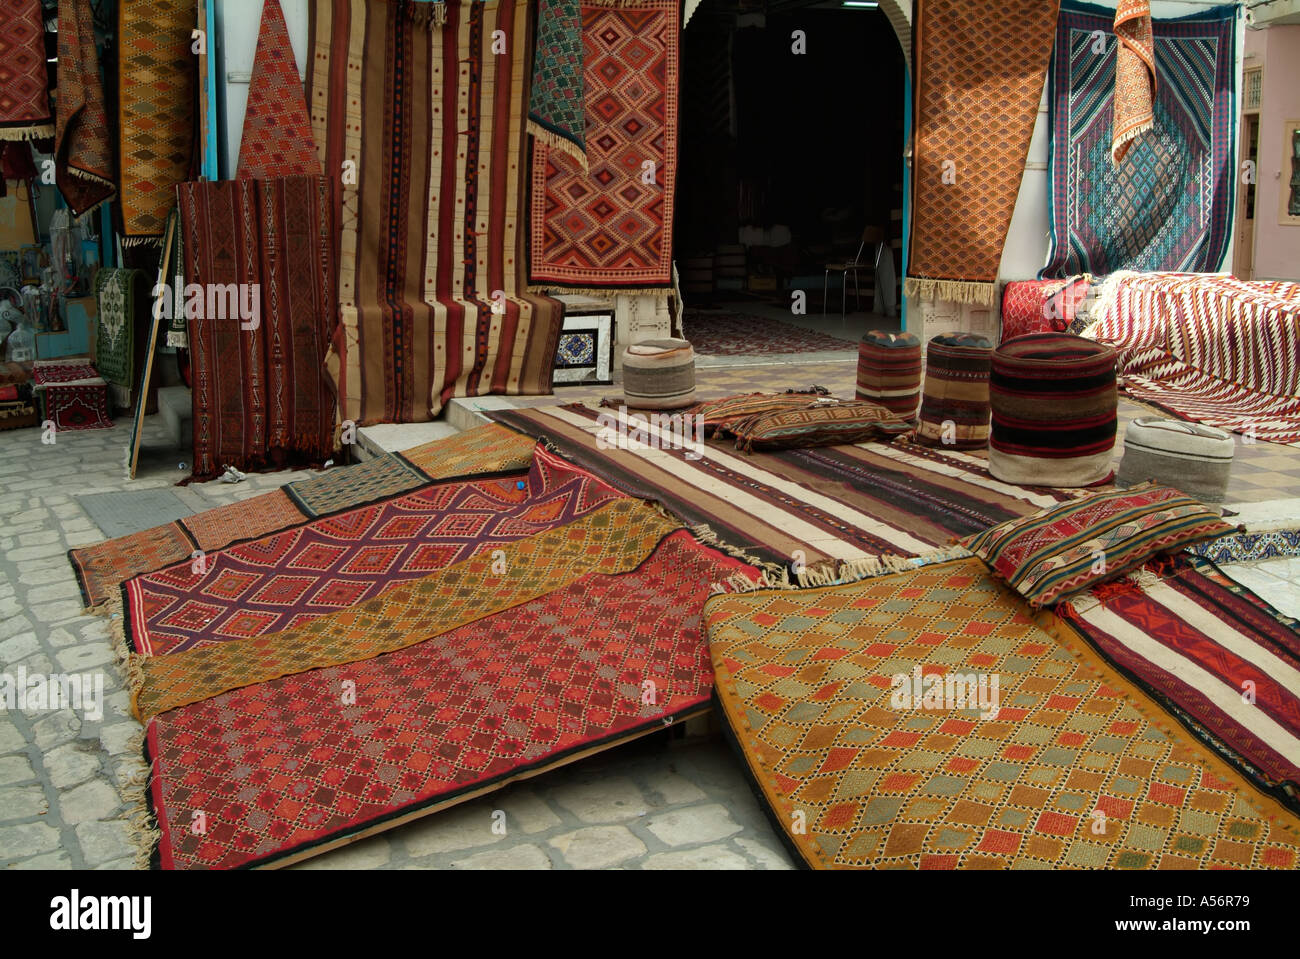 carpets for sale kairouan tunisia stock image - Carpets For Sale